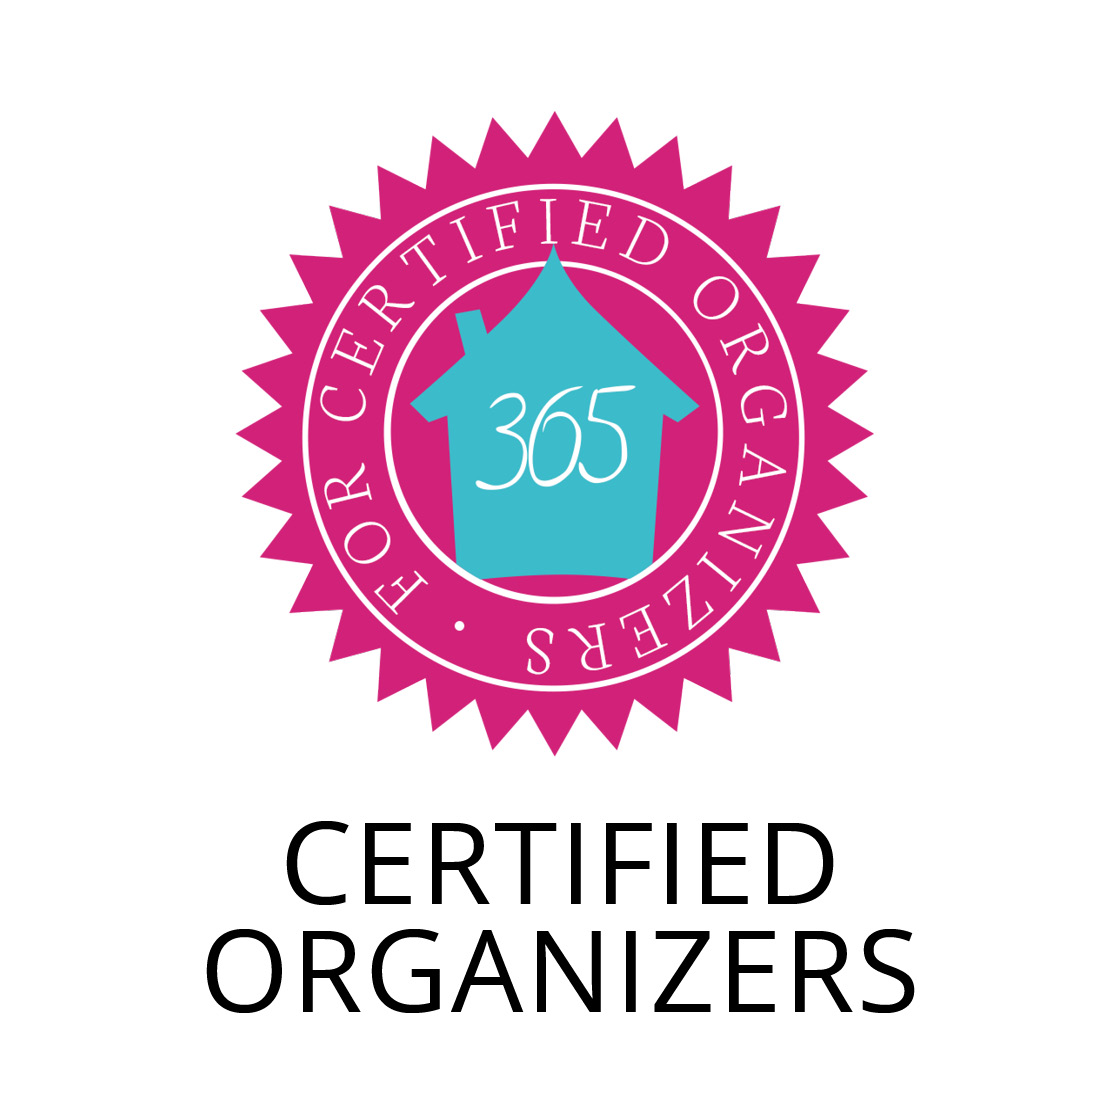 For Certified Organizers